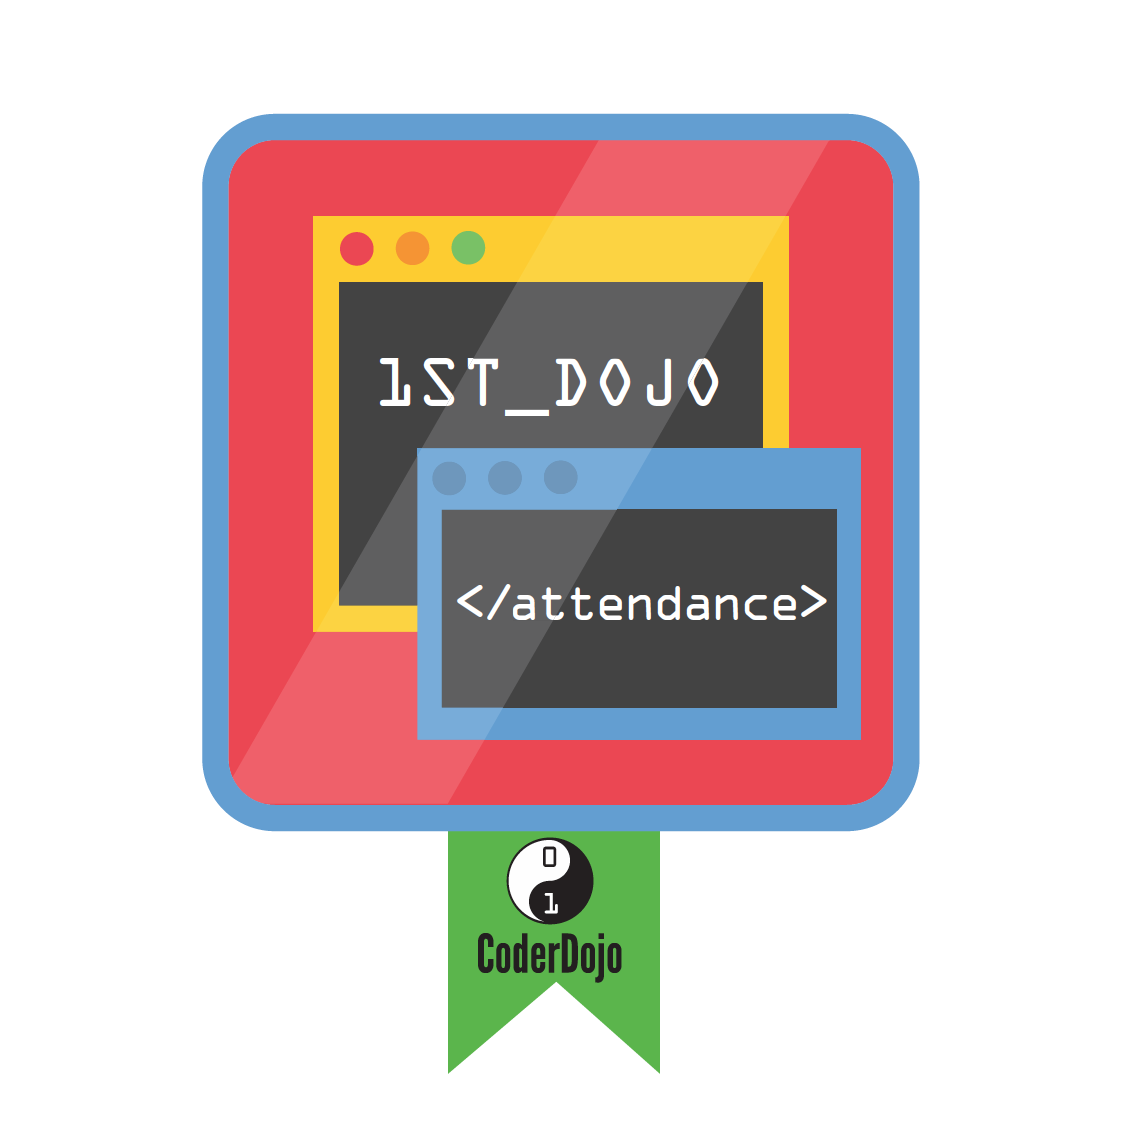 My First Dojo Badge